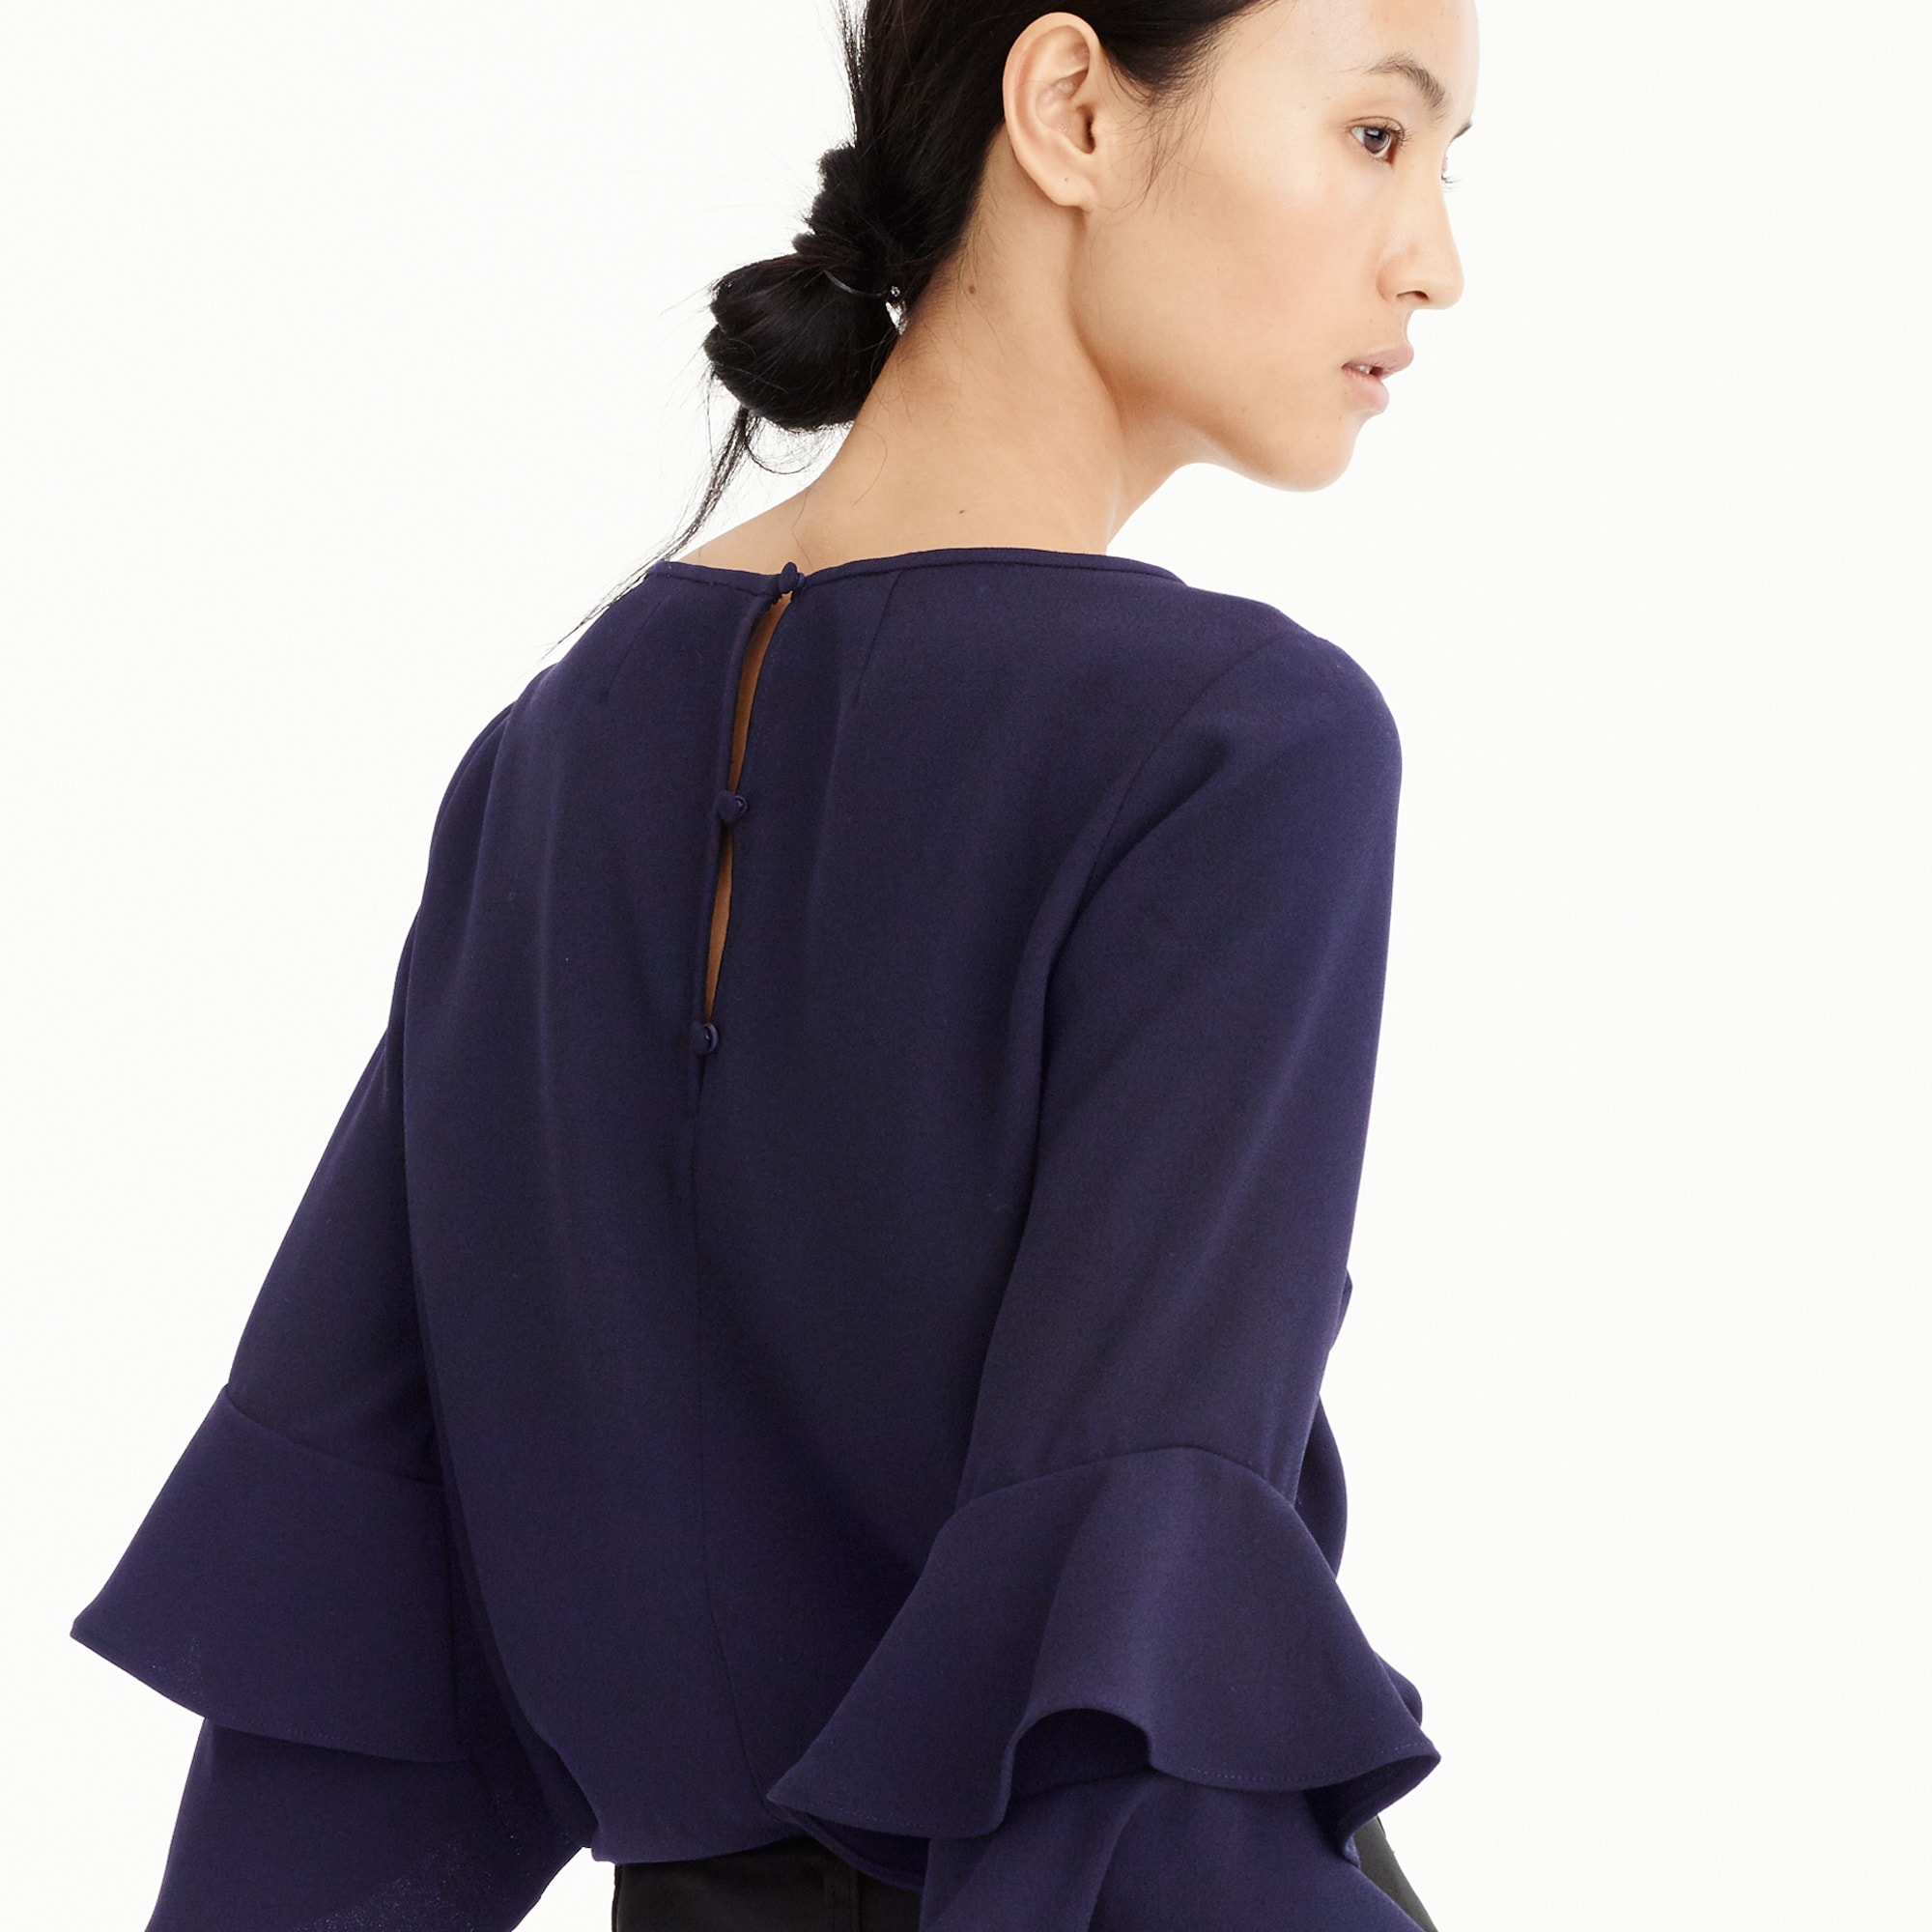 Image 3 for Tall Tiered bell-sleeve top in drapey crepe